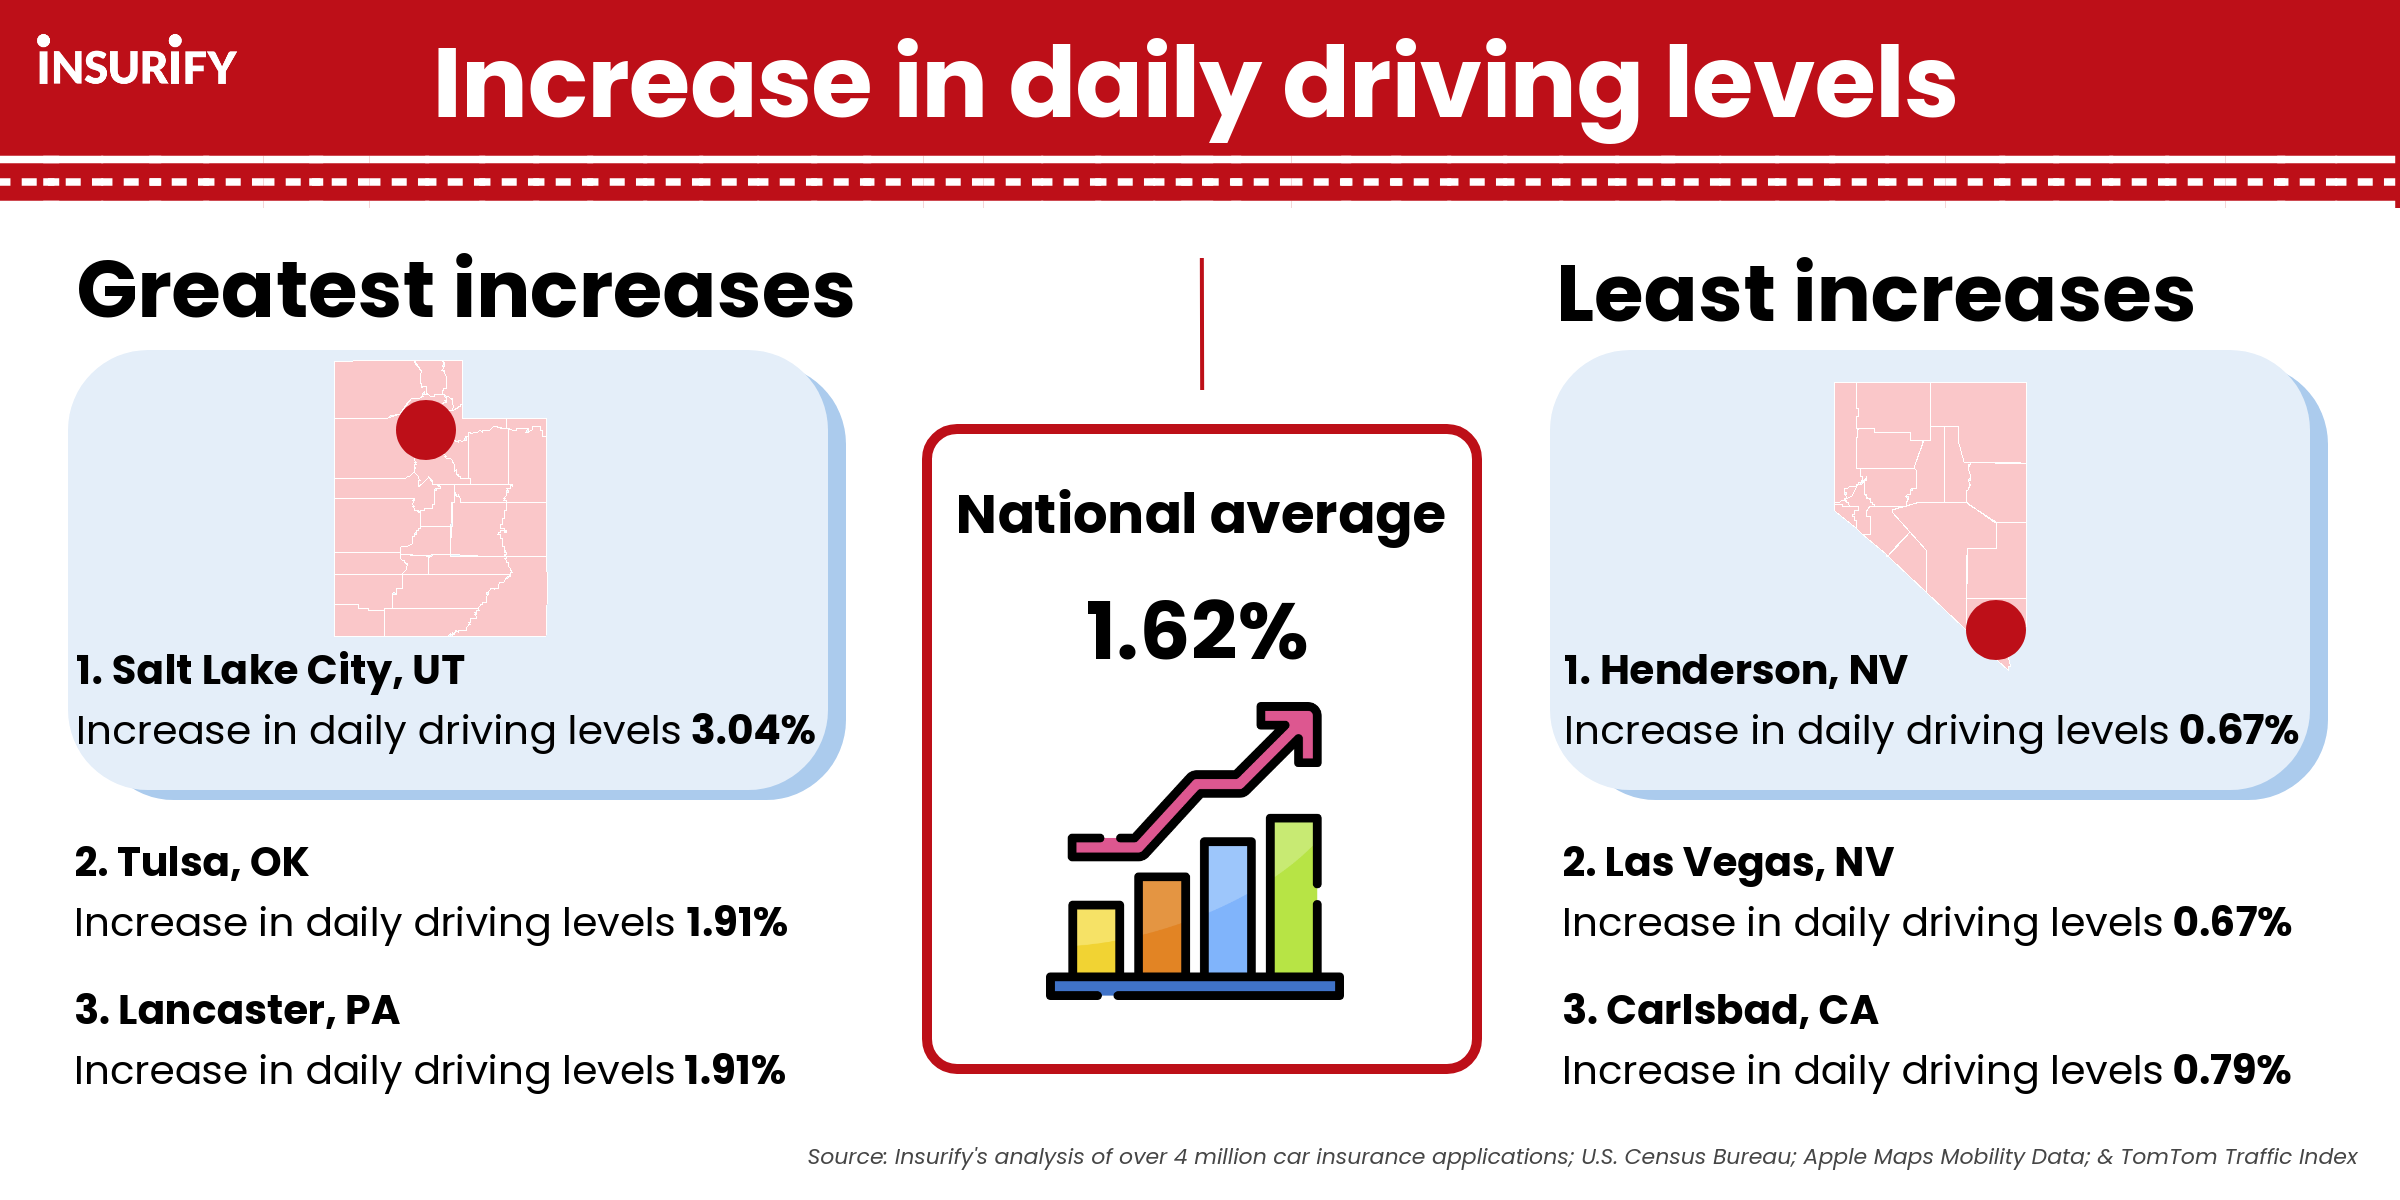 Infographic showing the greatest, least, and average increases in daily driving levels between January 2020 and July 2021.